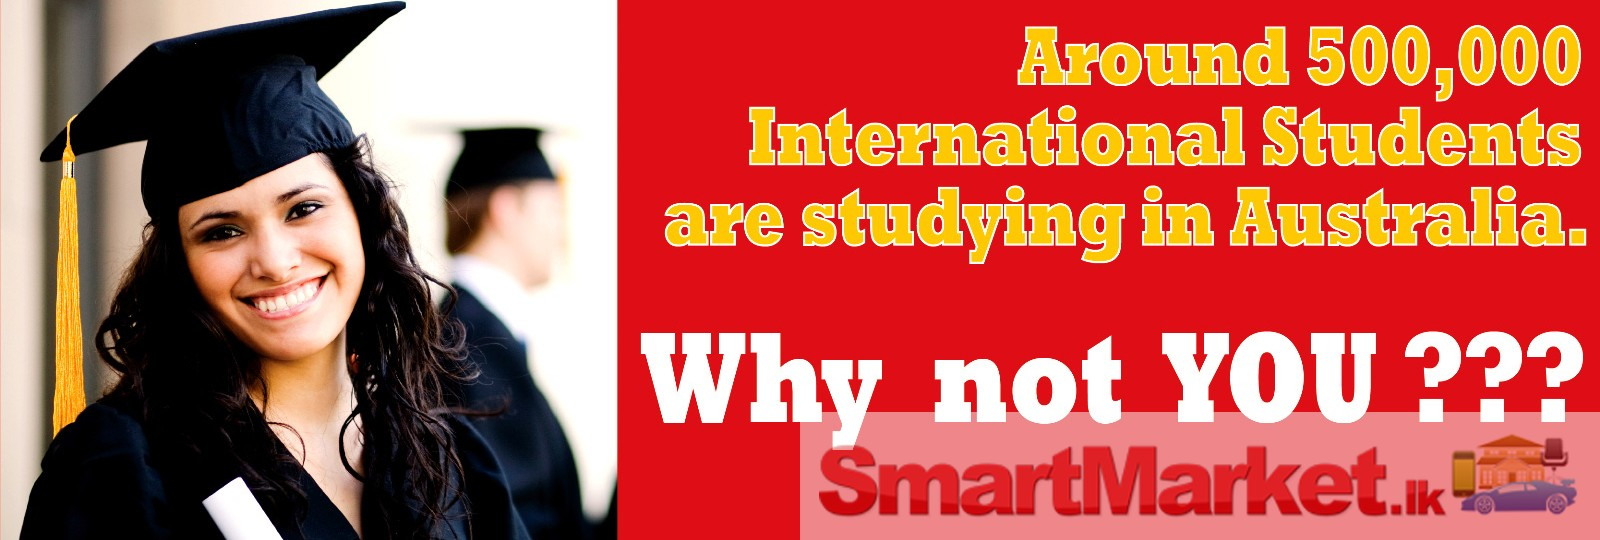 why do students study in australia Why study in australia when most people think of australia, they see wide open spaces of outback bush, kangaroos, koalas and clean air and water australia is currently the third most popular destination for international students in the english-speaking world, behind the united states and the.